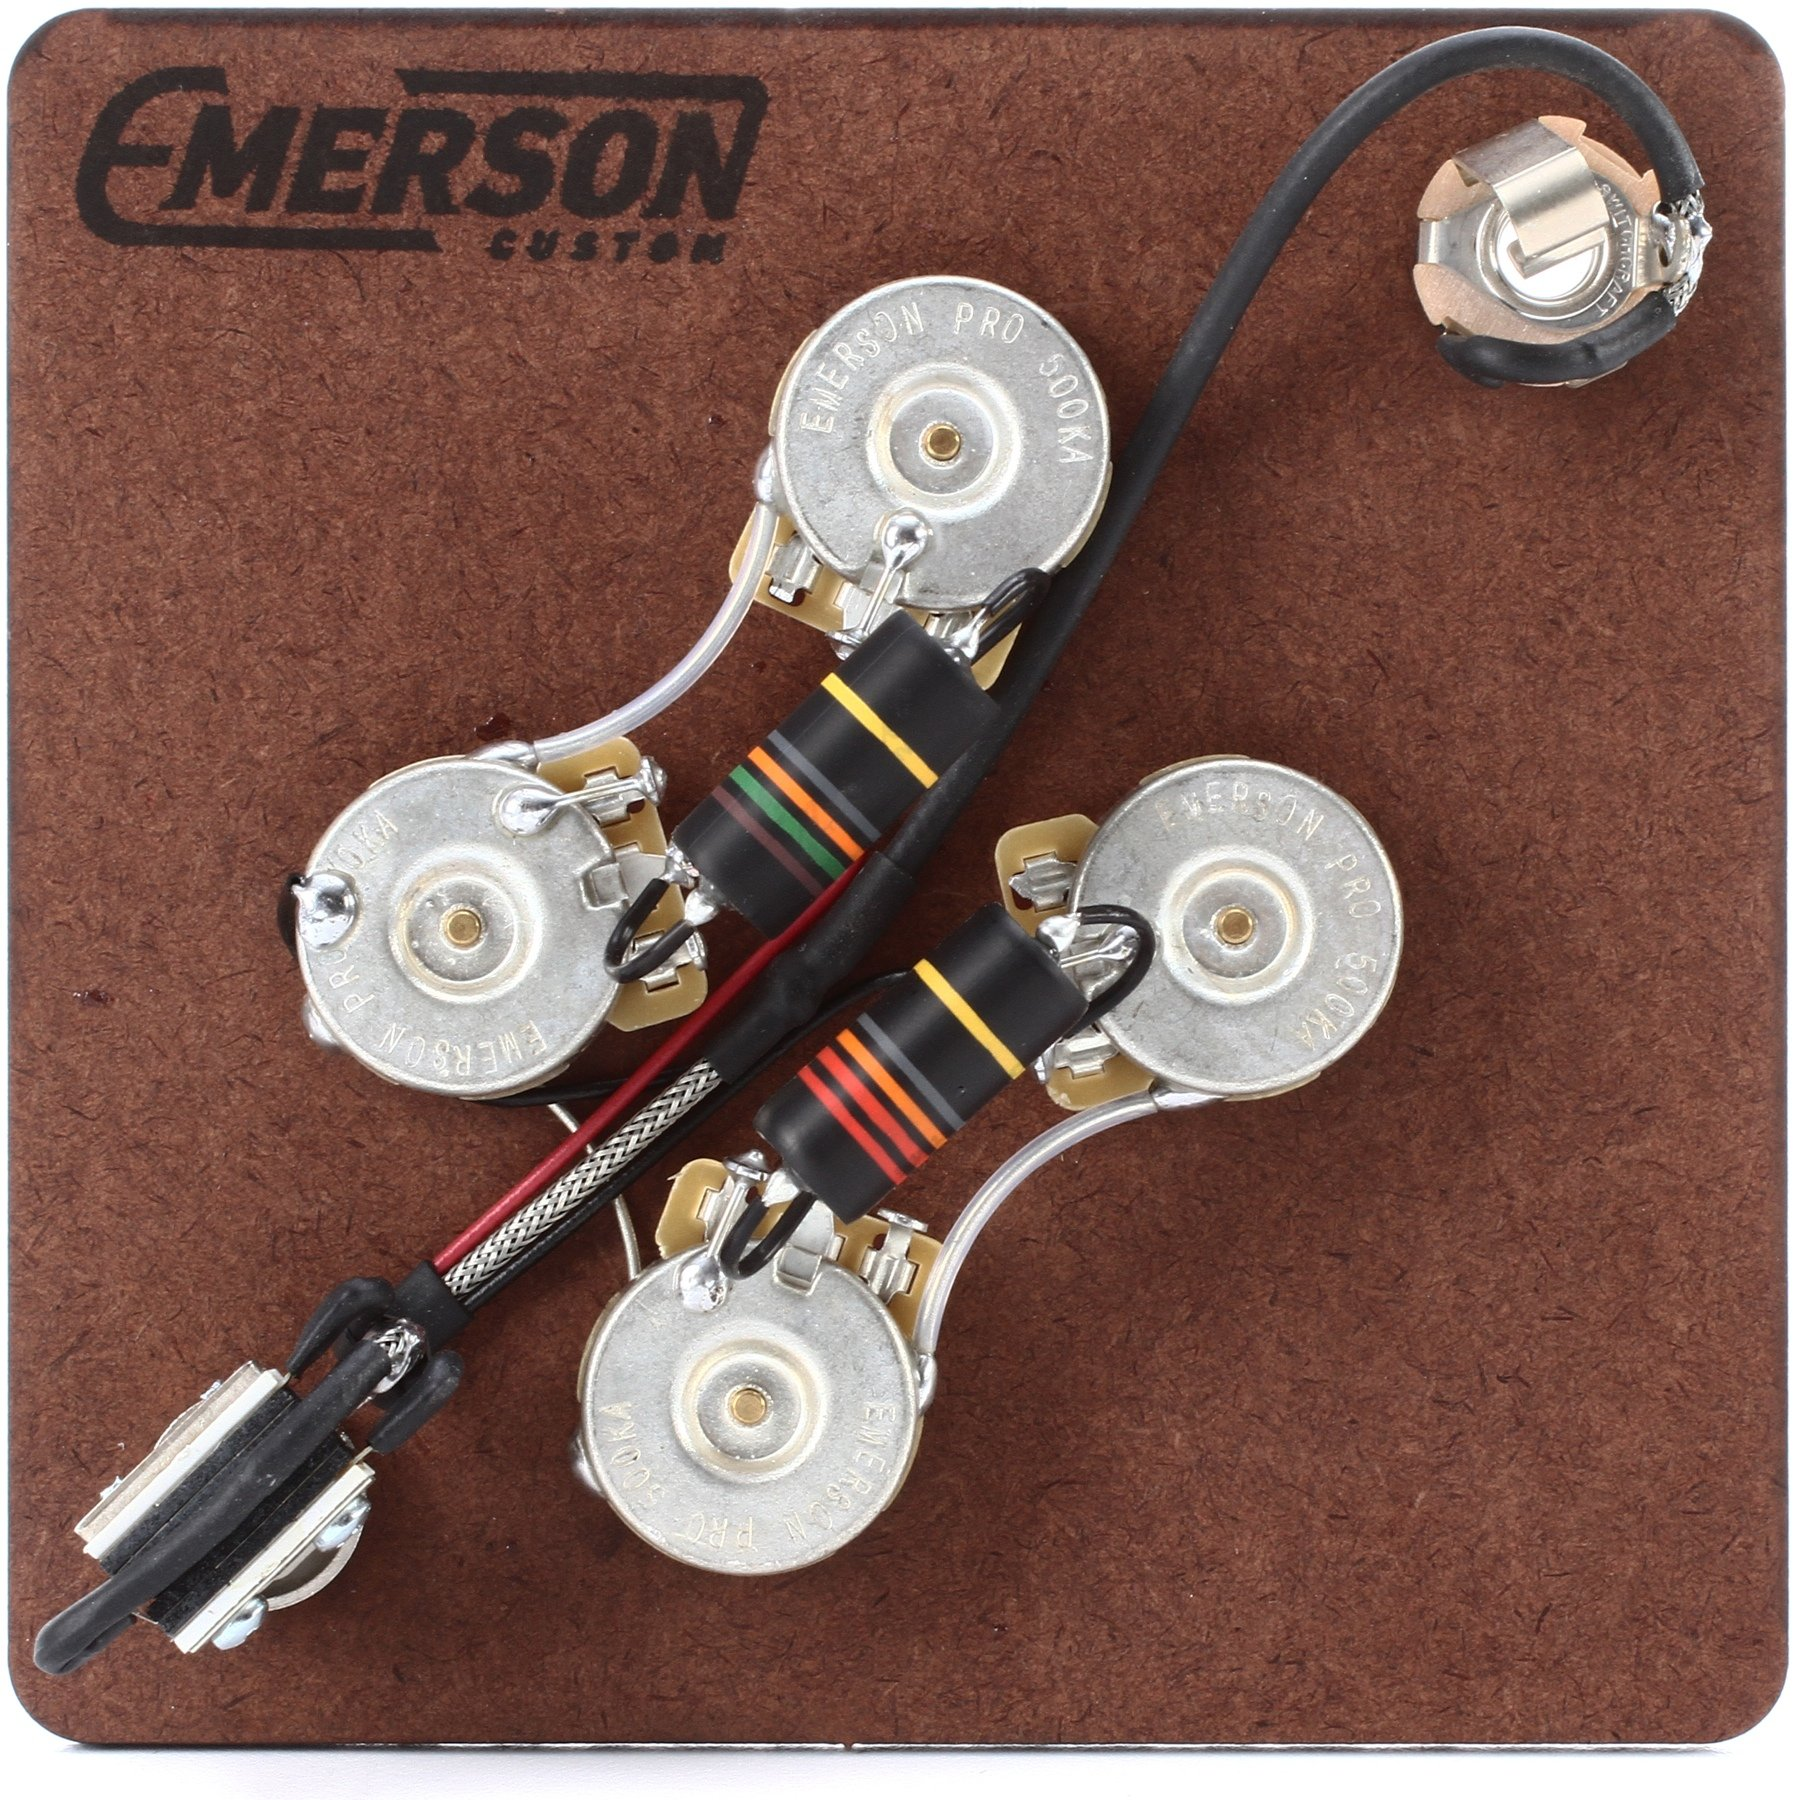 Emerson Custom Prewired Kit For Gibson Sg Guitars Sweetwater Guitar Wiring Harness Pickup Volume Tone 3way Switch Jack Image 1